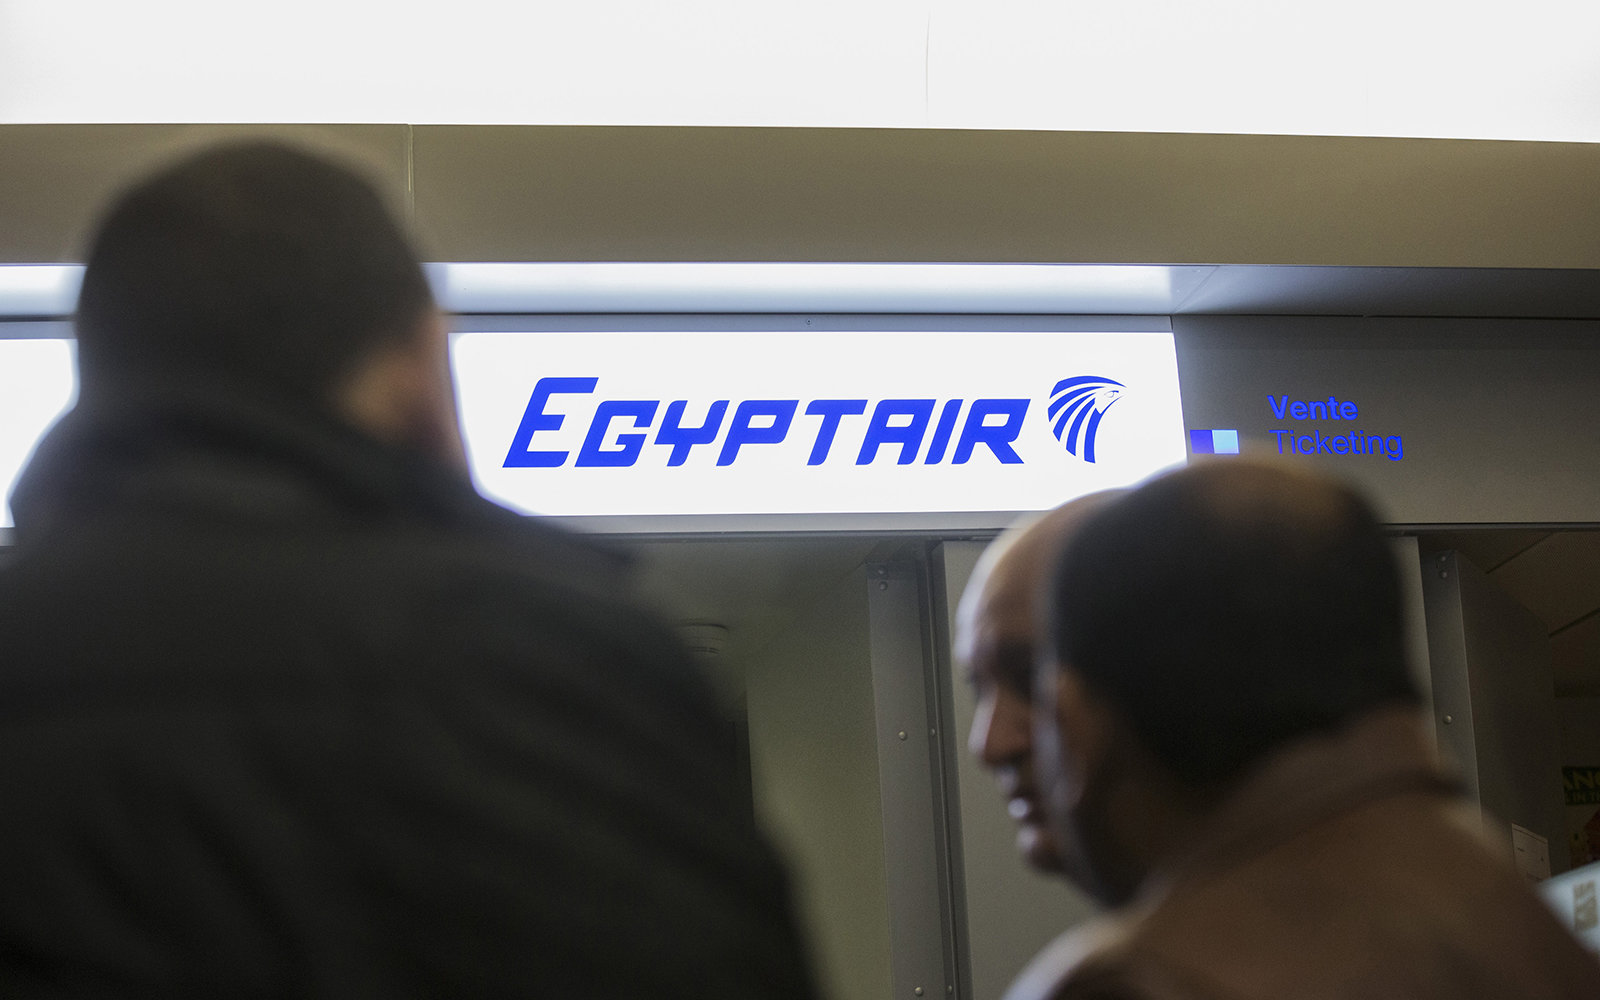 Egypt Air logo